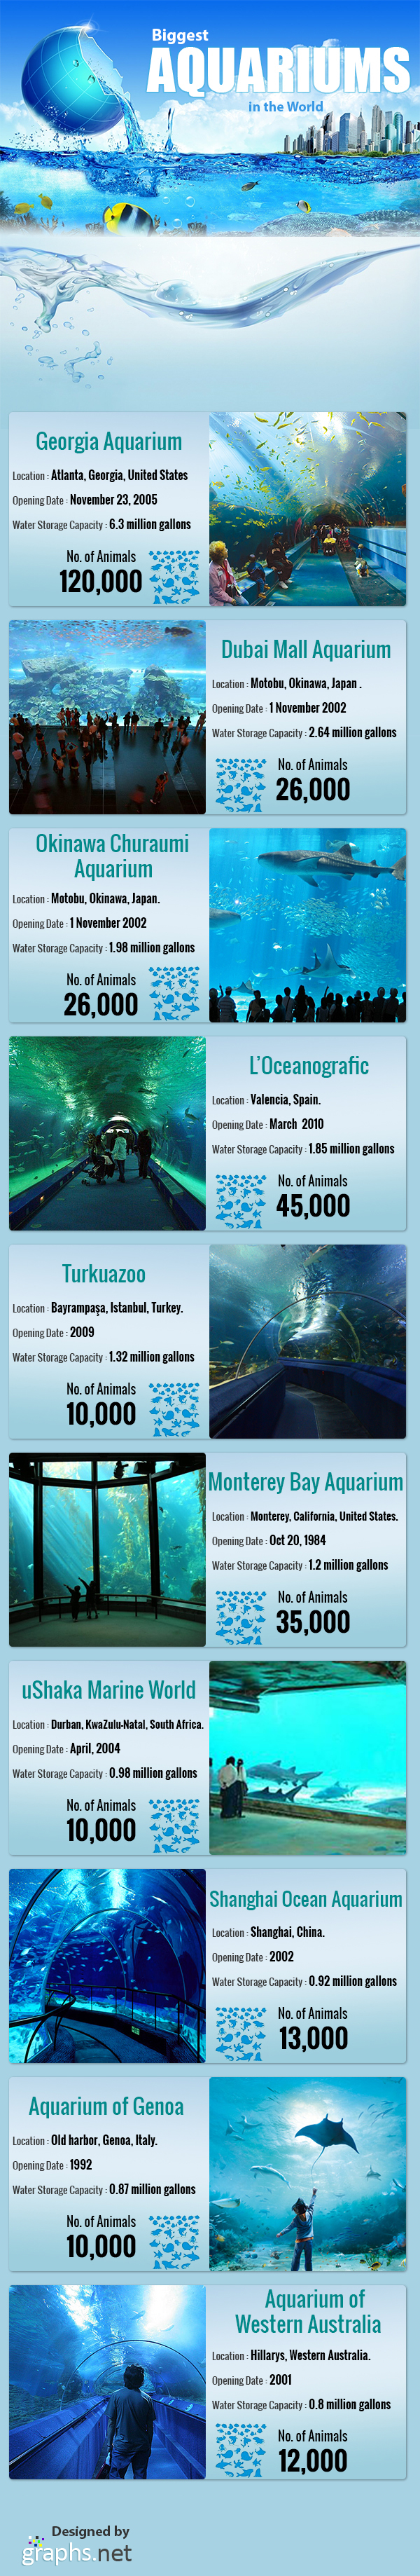 Biggest Aquariums in the World